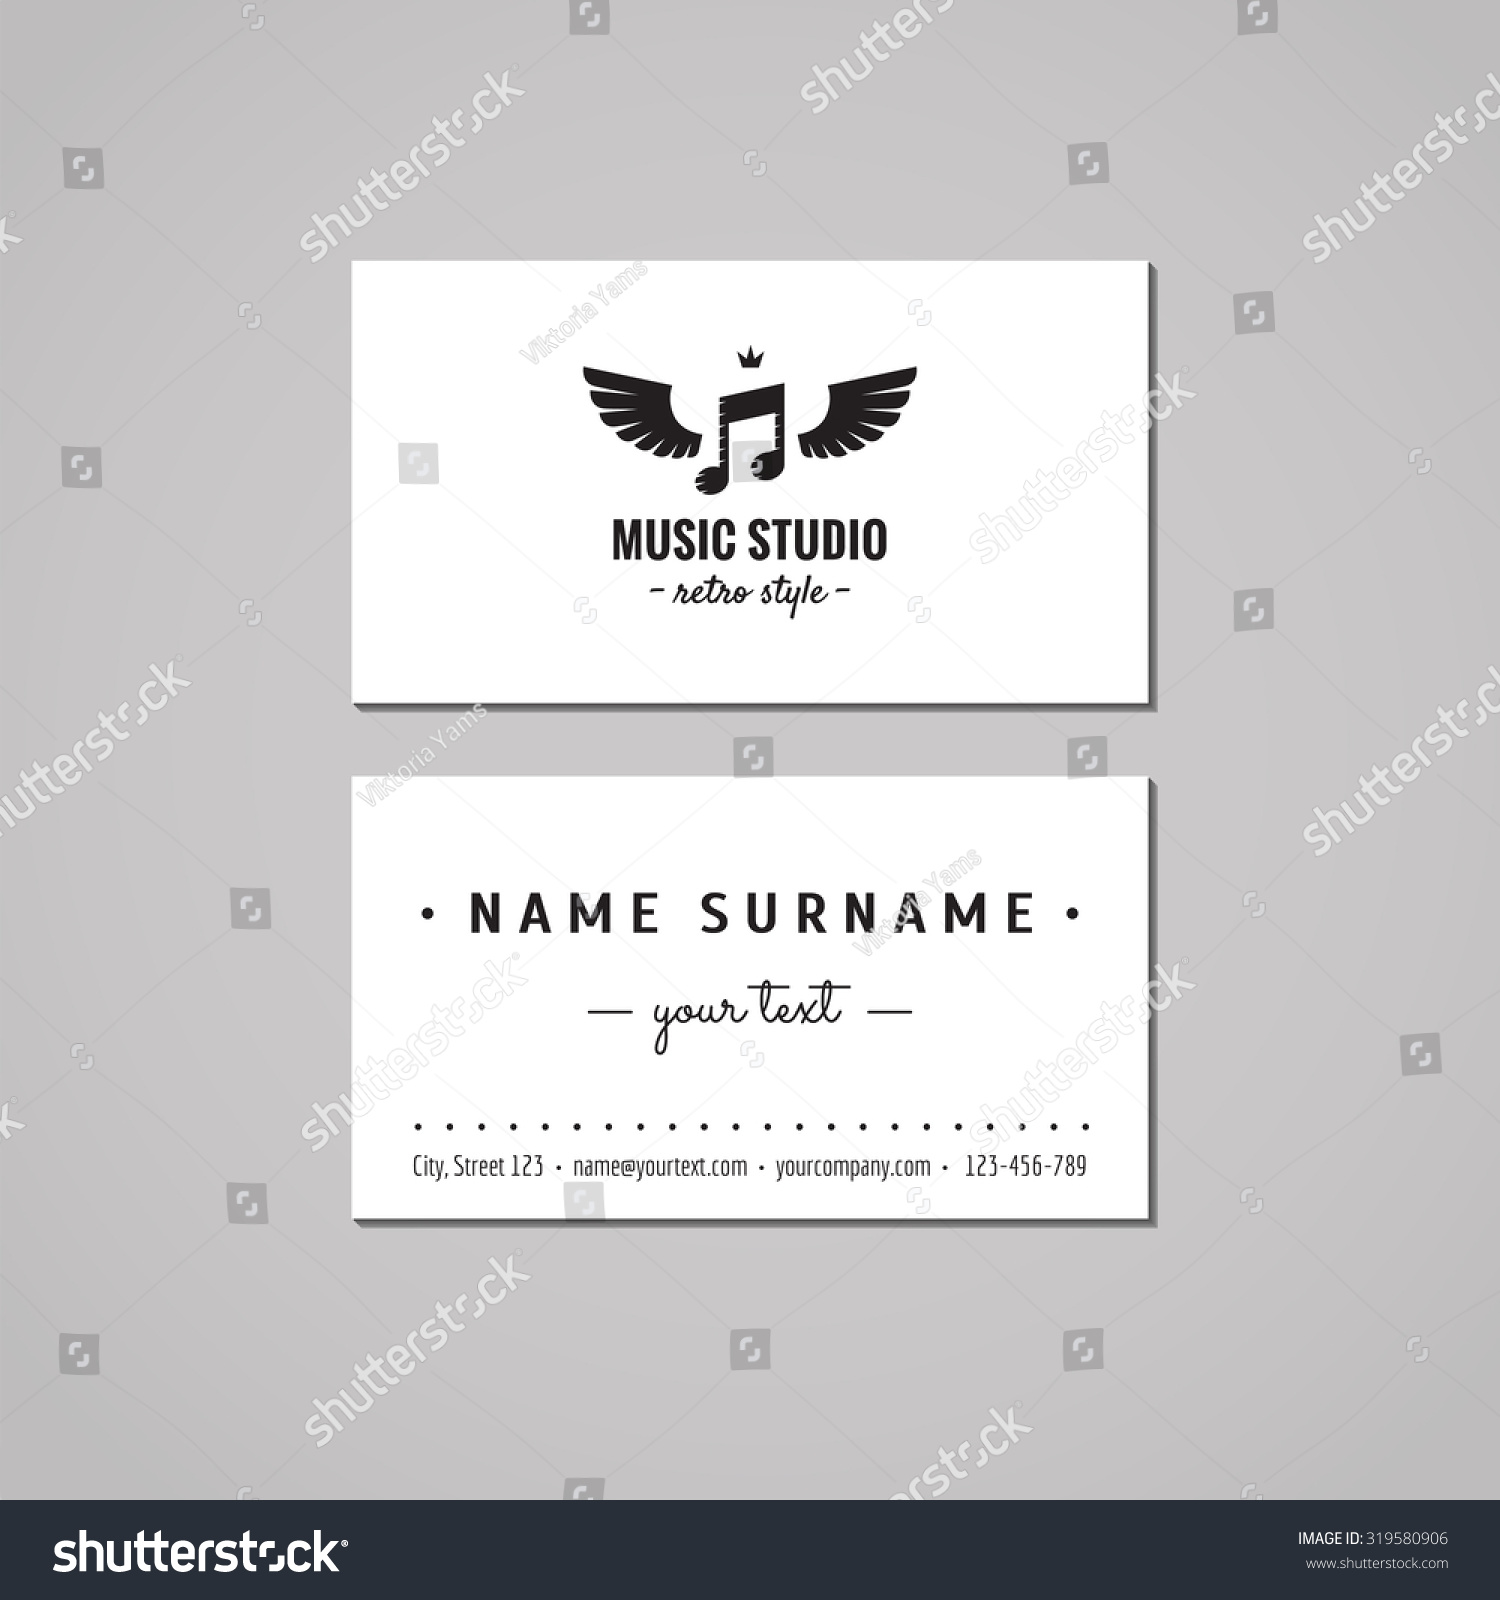 Music Studio Business Card Design Concept Stock Vector